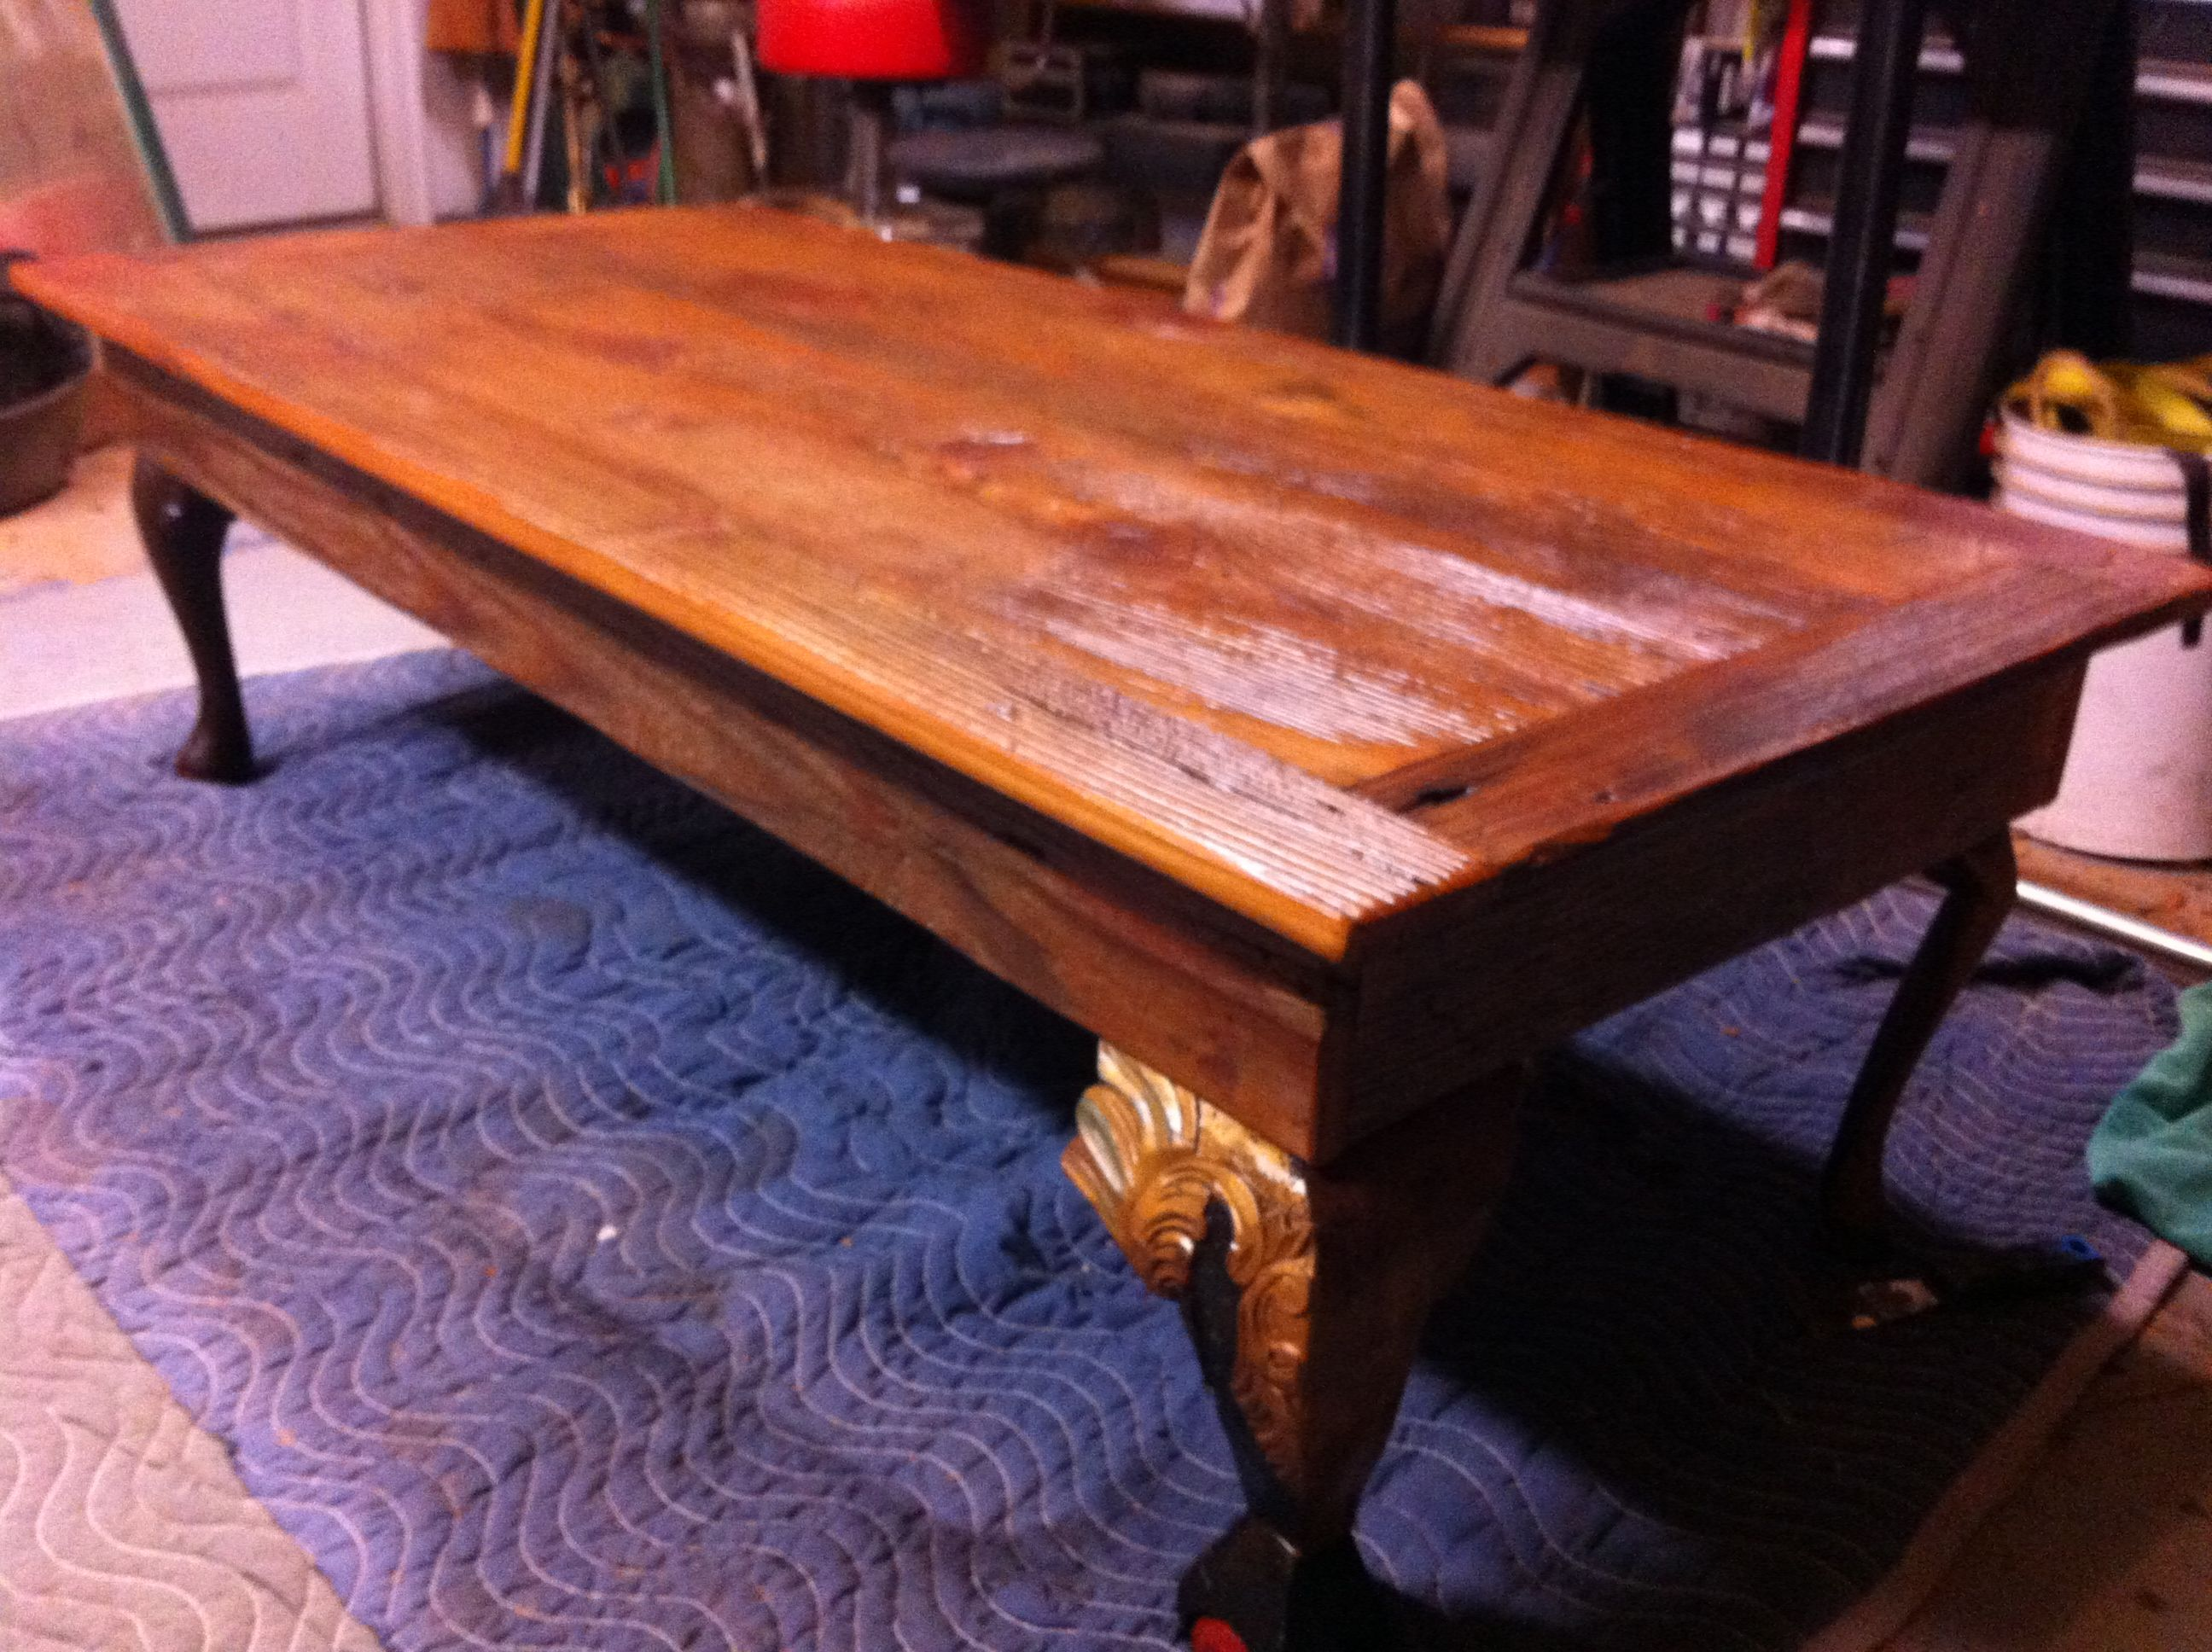 Recycled flooring coffee table top with miss-matched legs for character.